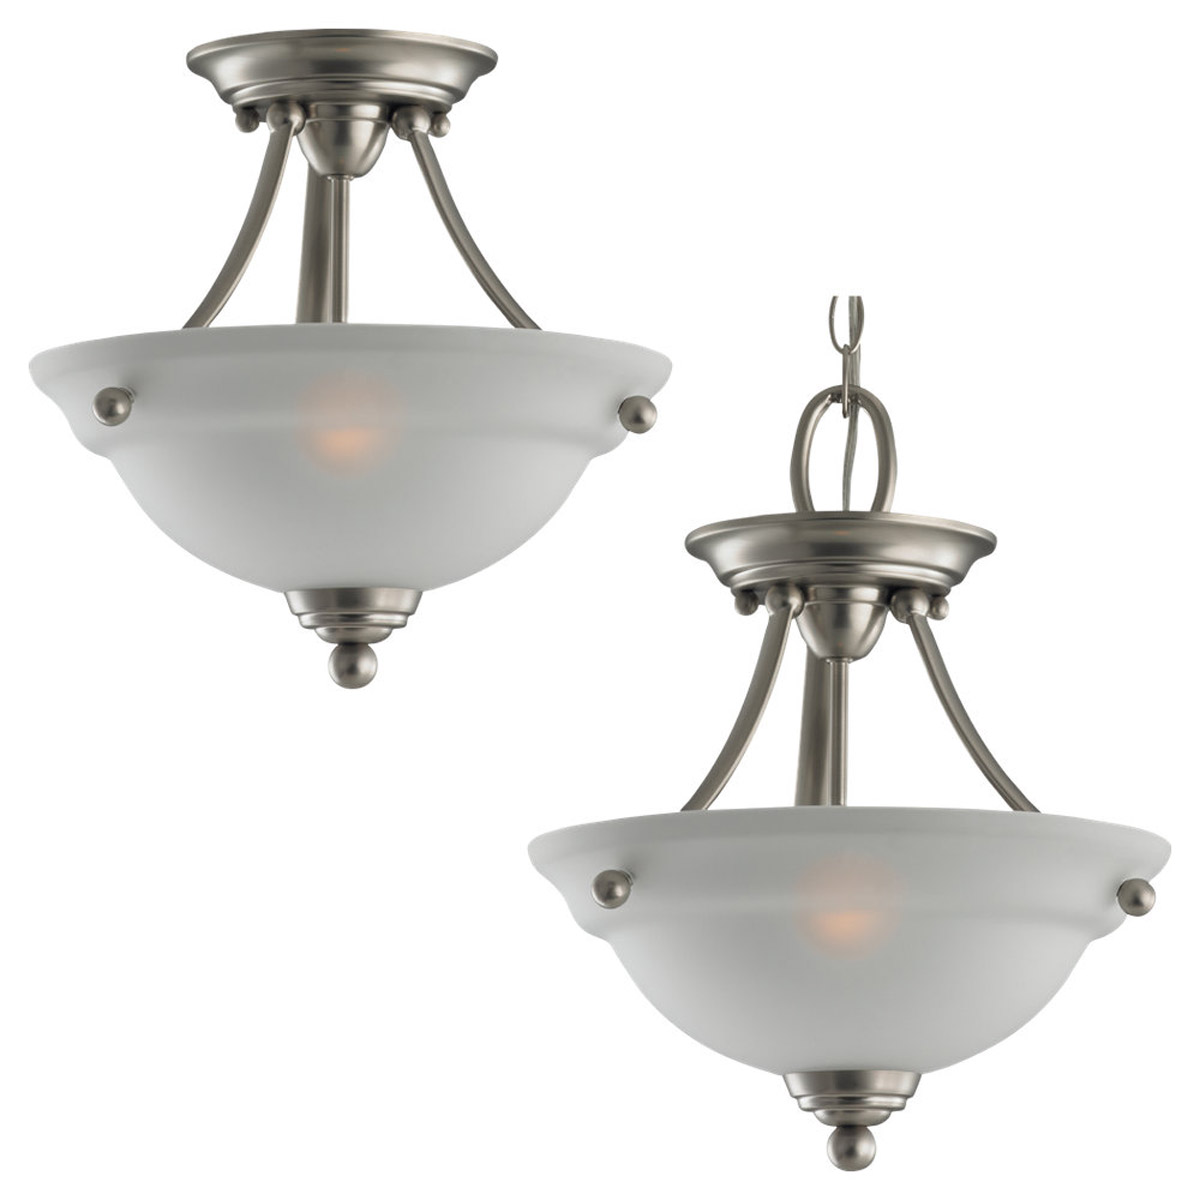 Sea Gull 77625-962 Wheaton 2 Light 12 inch Brushed Nickel Semi-Flush Mount Ceiling Light photo